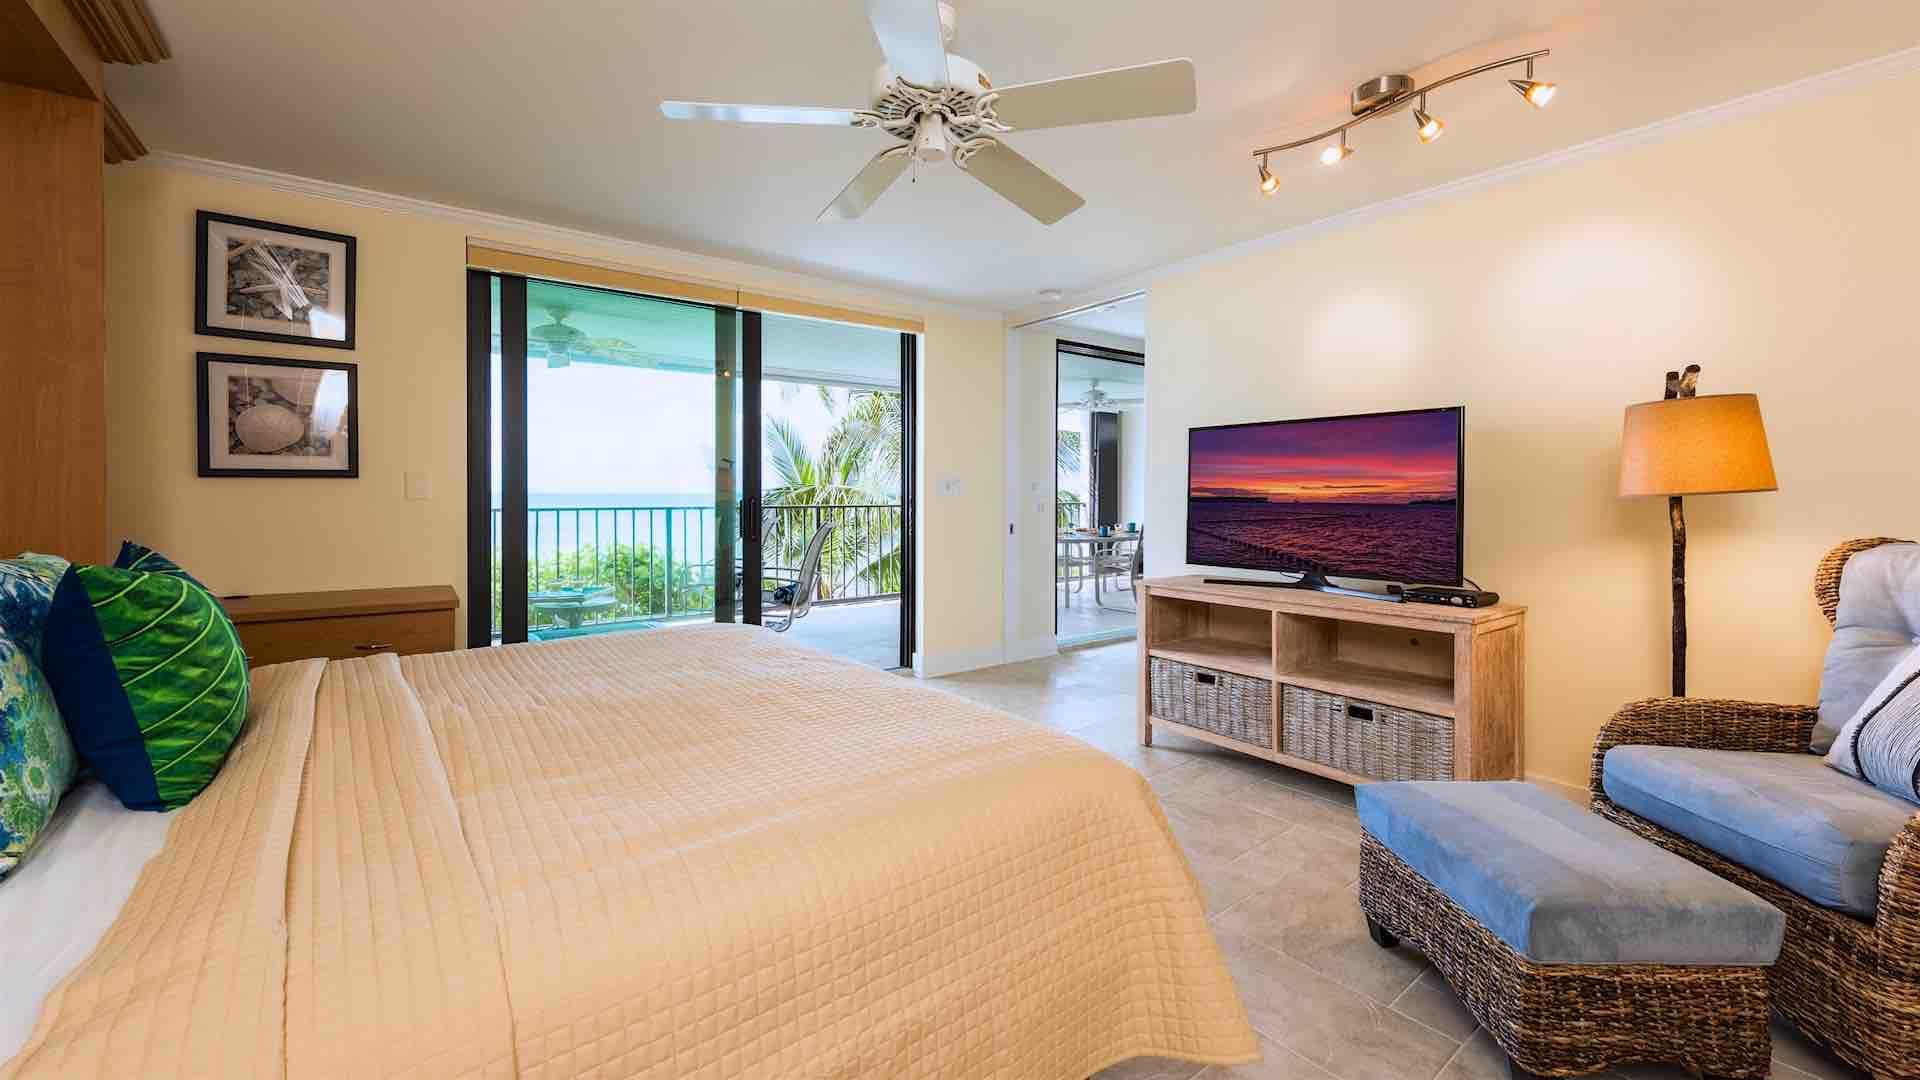 The master bedroom has a large flat screen TV and balcony access...